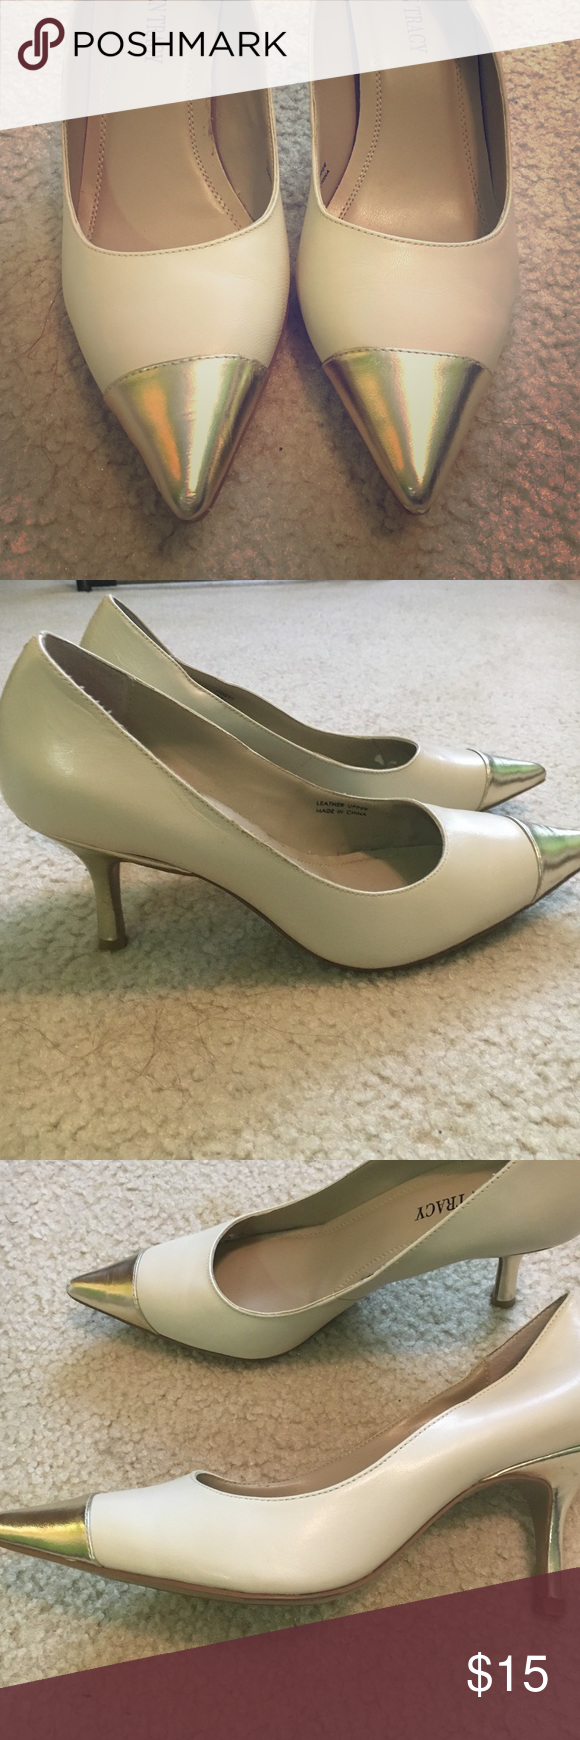 Gold-tipped pumps, size 7.5 Ellen Tracy pumps, cream with a metallic gold detail at the tips. Heels are about 3 inches. Purchased at TJ Maxx. Only worn a handful of times! Ellen Tracy Shoes Heels